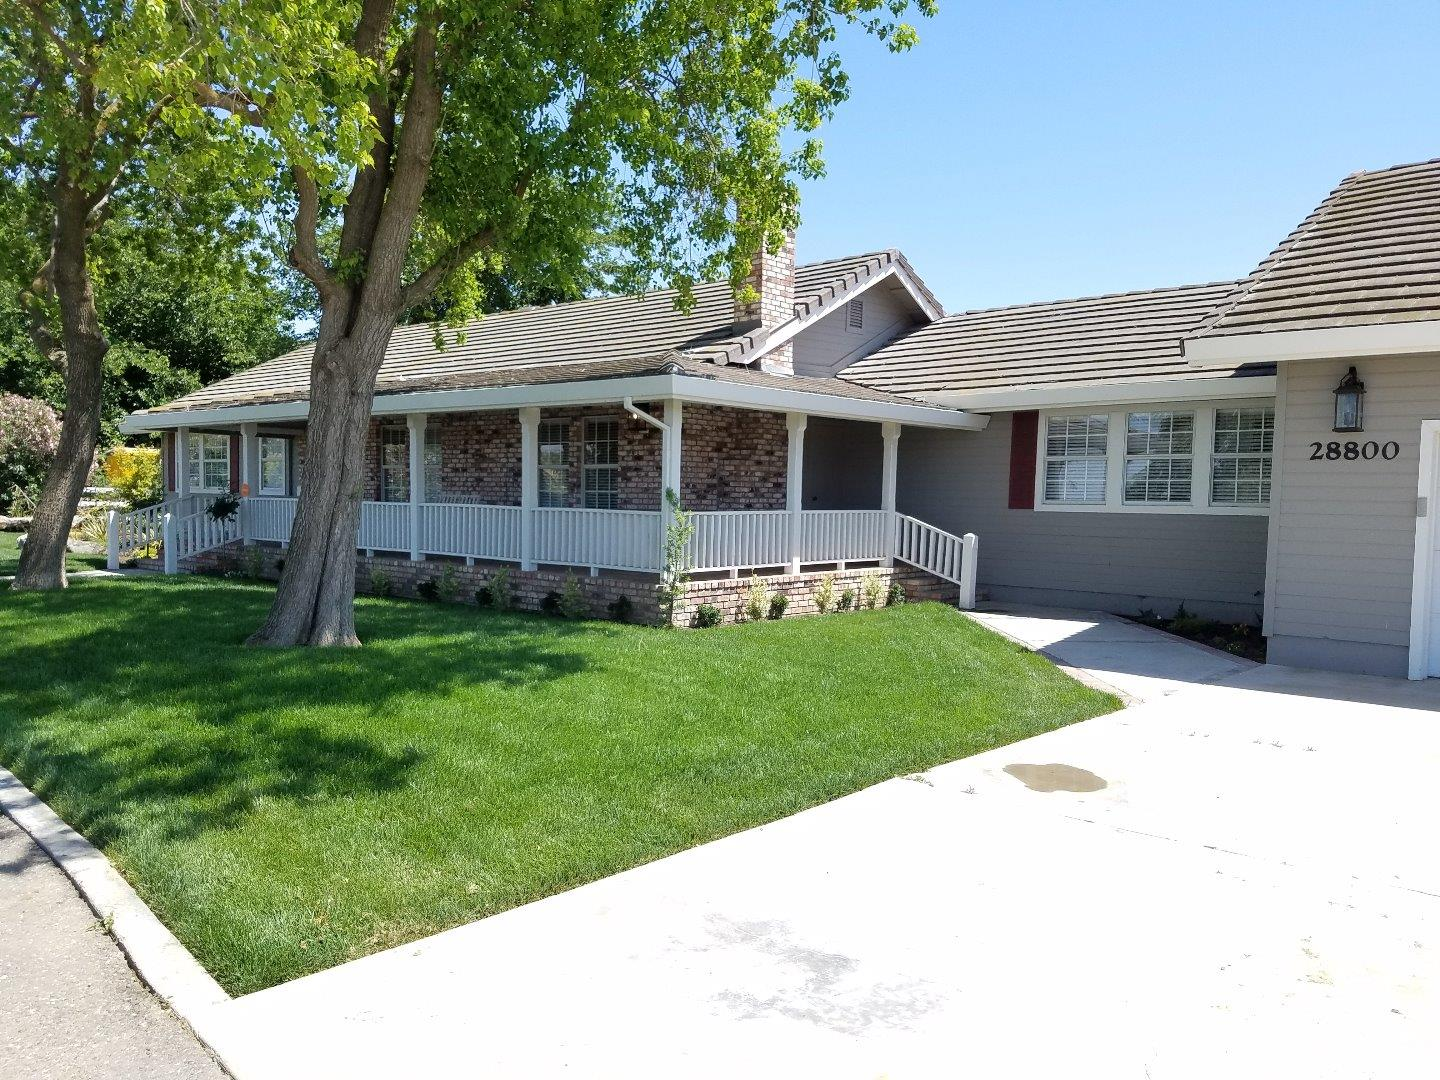 28800 Netherton Newman, CA 95360 - MLS #: ML81693368